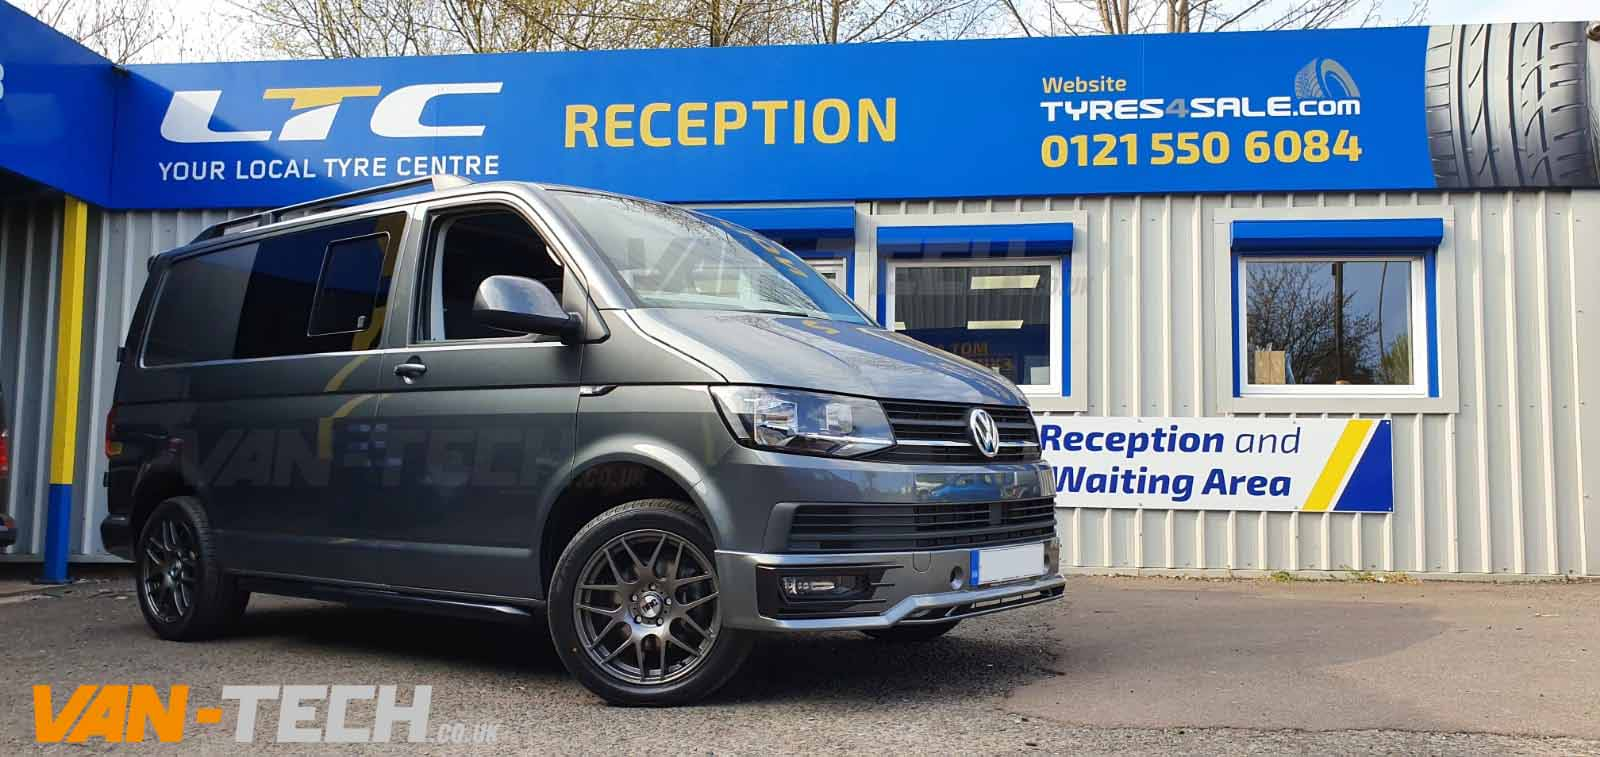 Vw Transporter T6 Parts And Accessories Van Tech